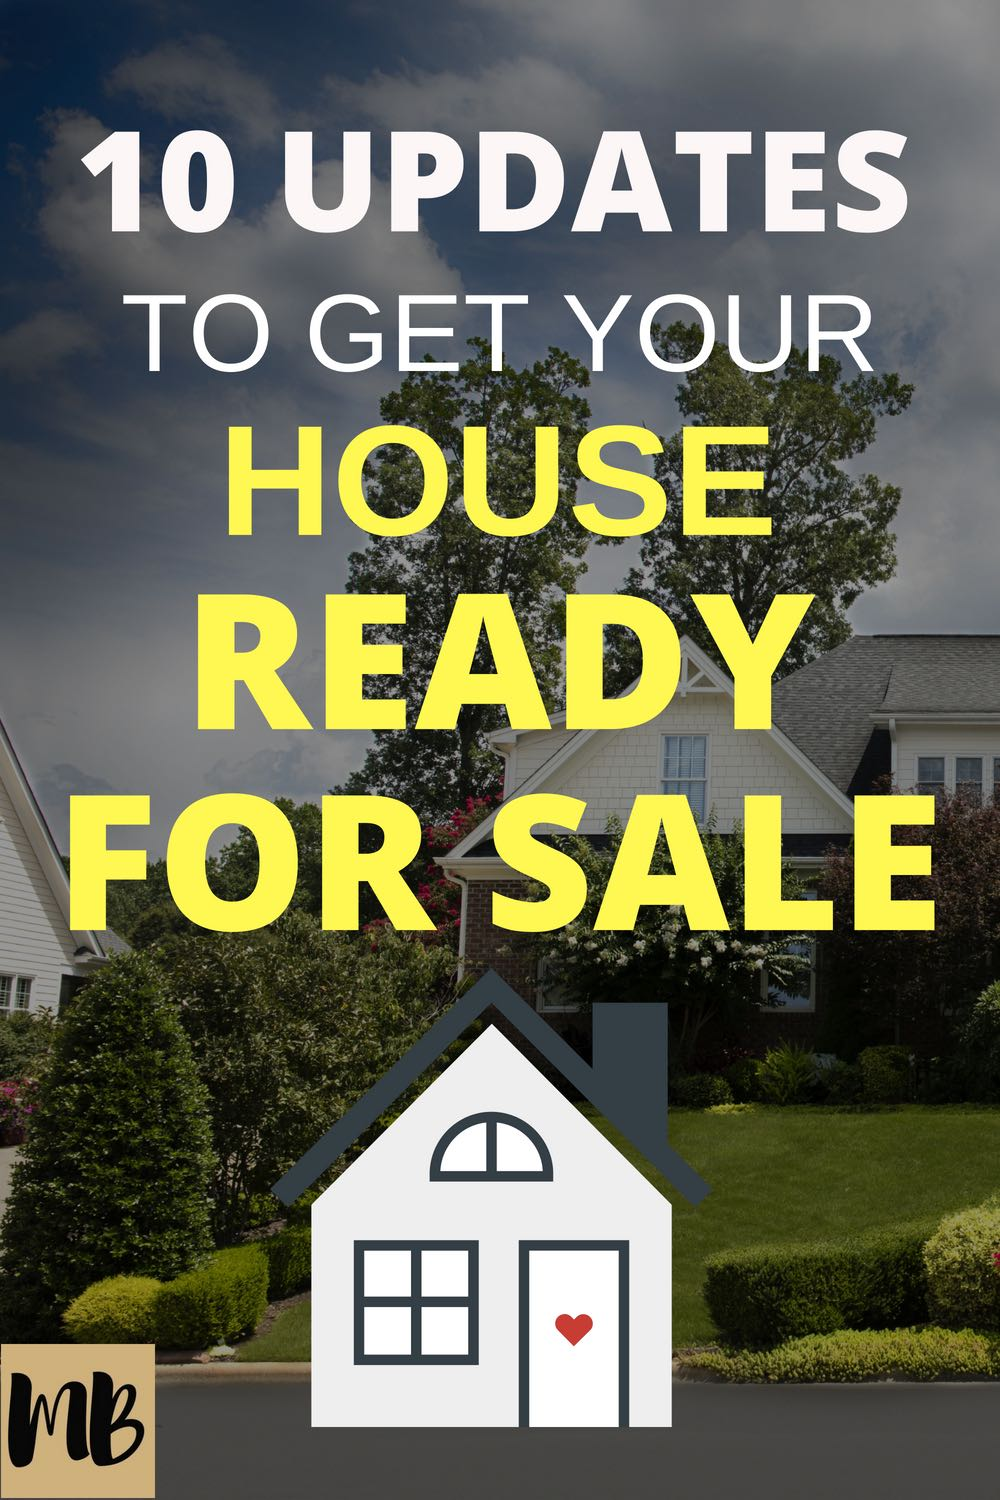 Get your house ready for sale with these 10 updates | #homesale #homerenovation #realestate